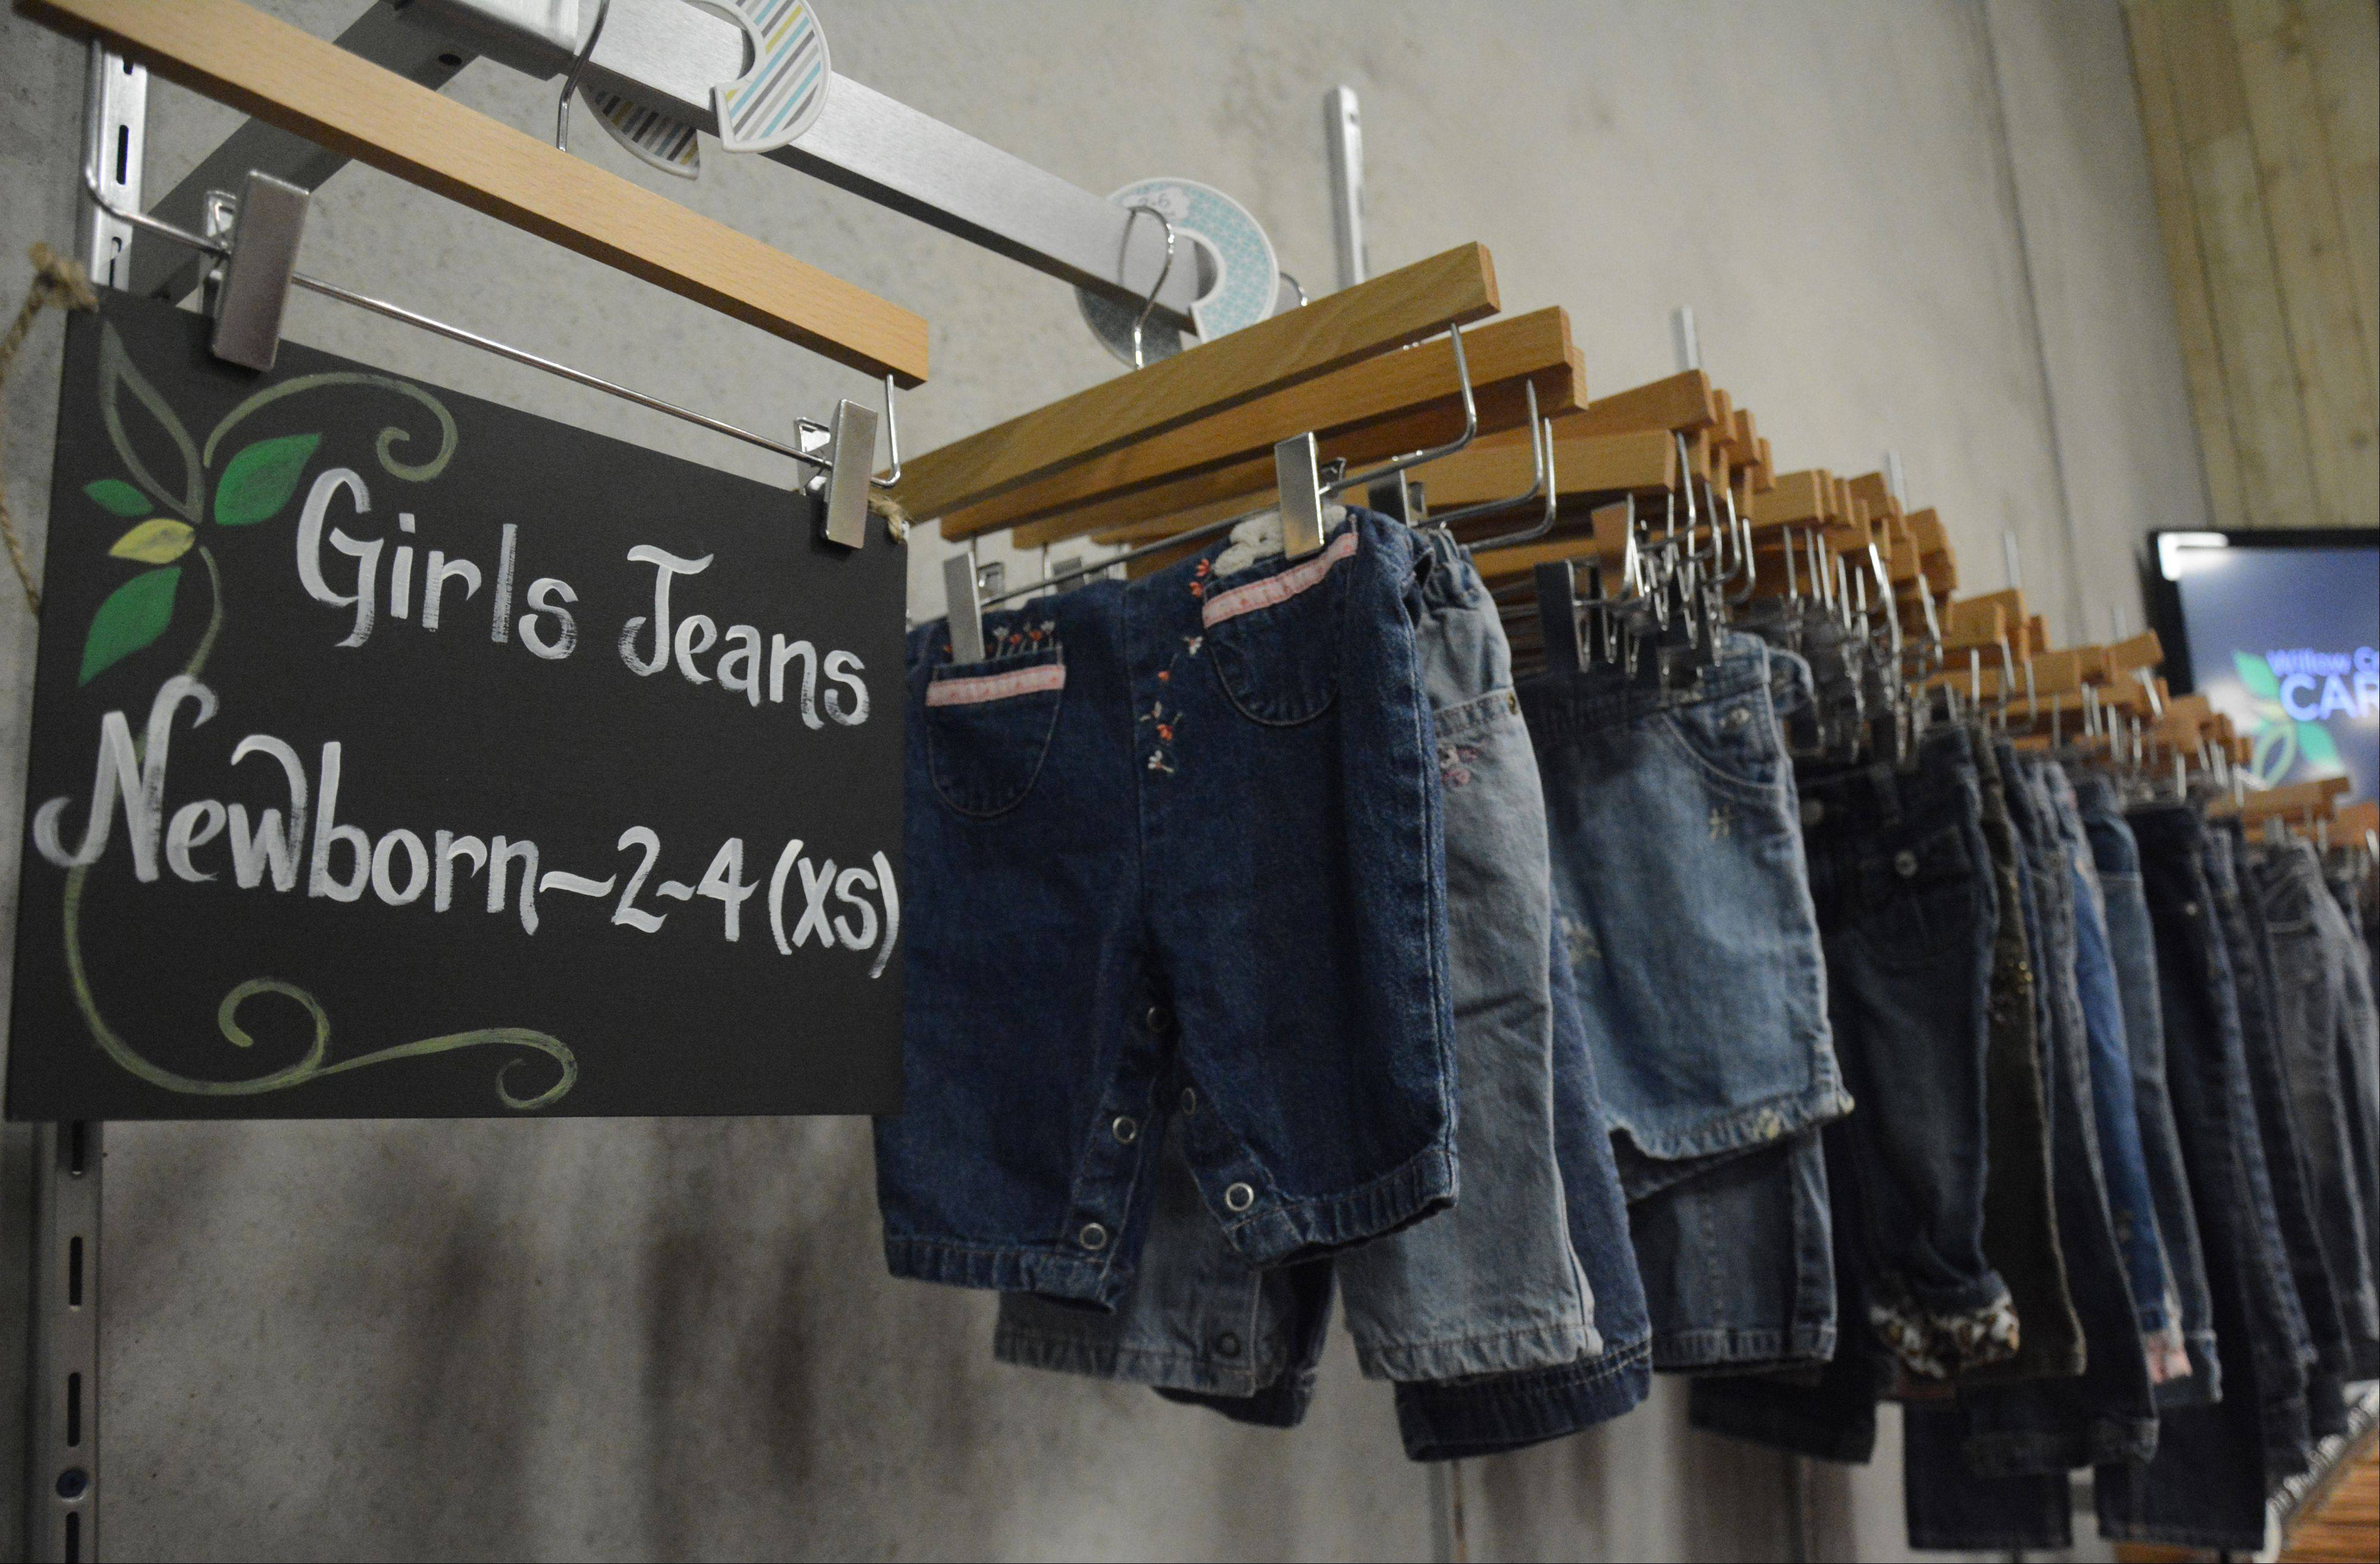 The Care Center also includes a used clothing store.